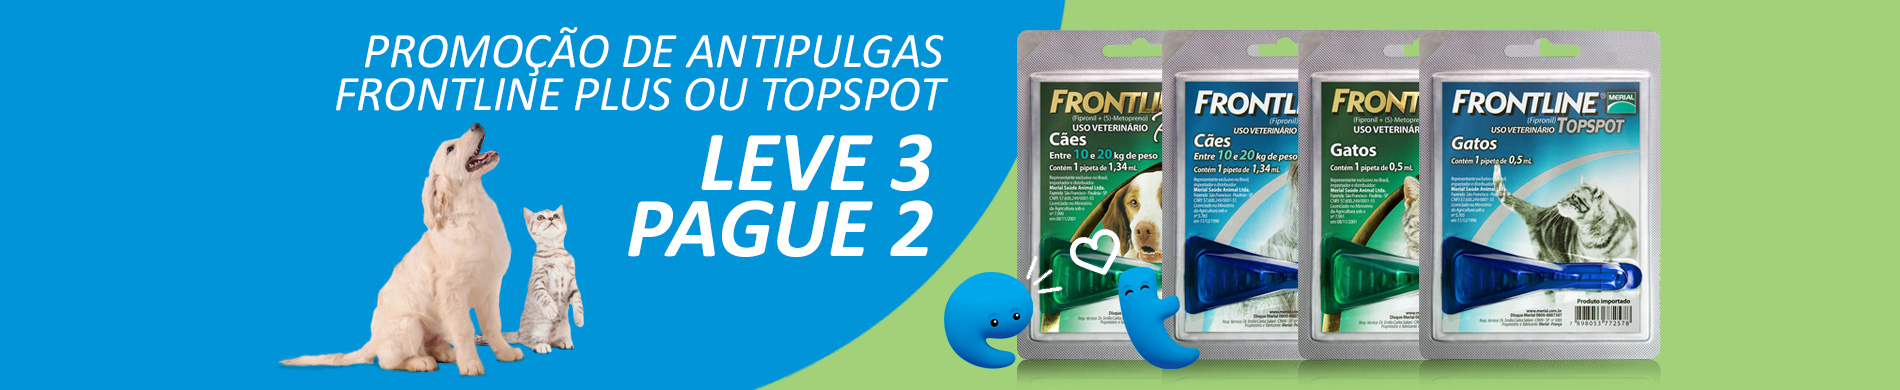 Banner Frontline Leve 3 Pague 2